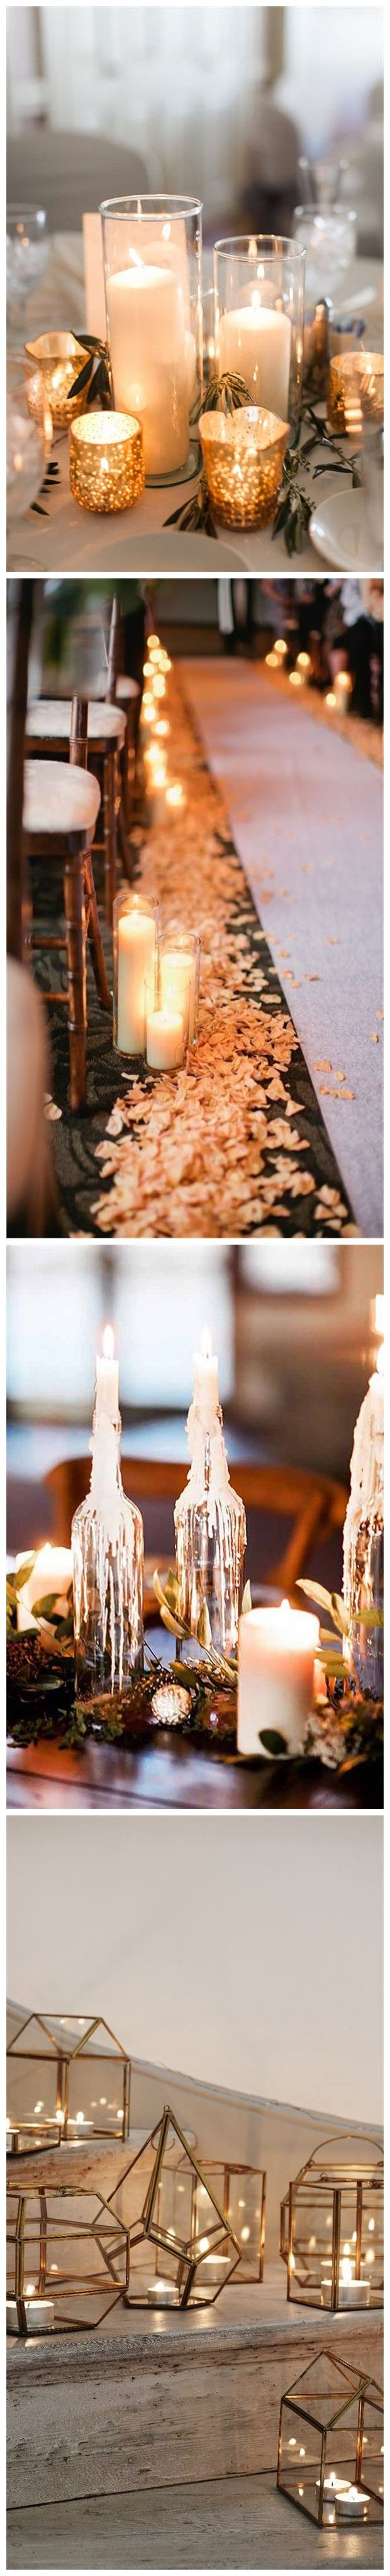 Wedding decorations for reception january 2019  Stuning Wedding Candlelight Decoration Ideas You Will Love